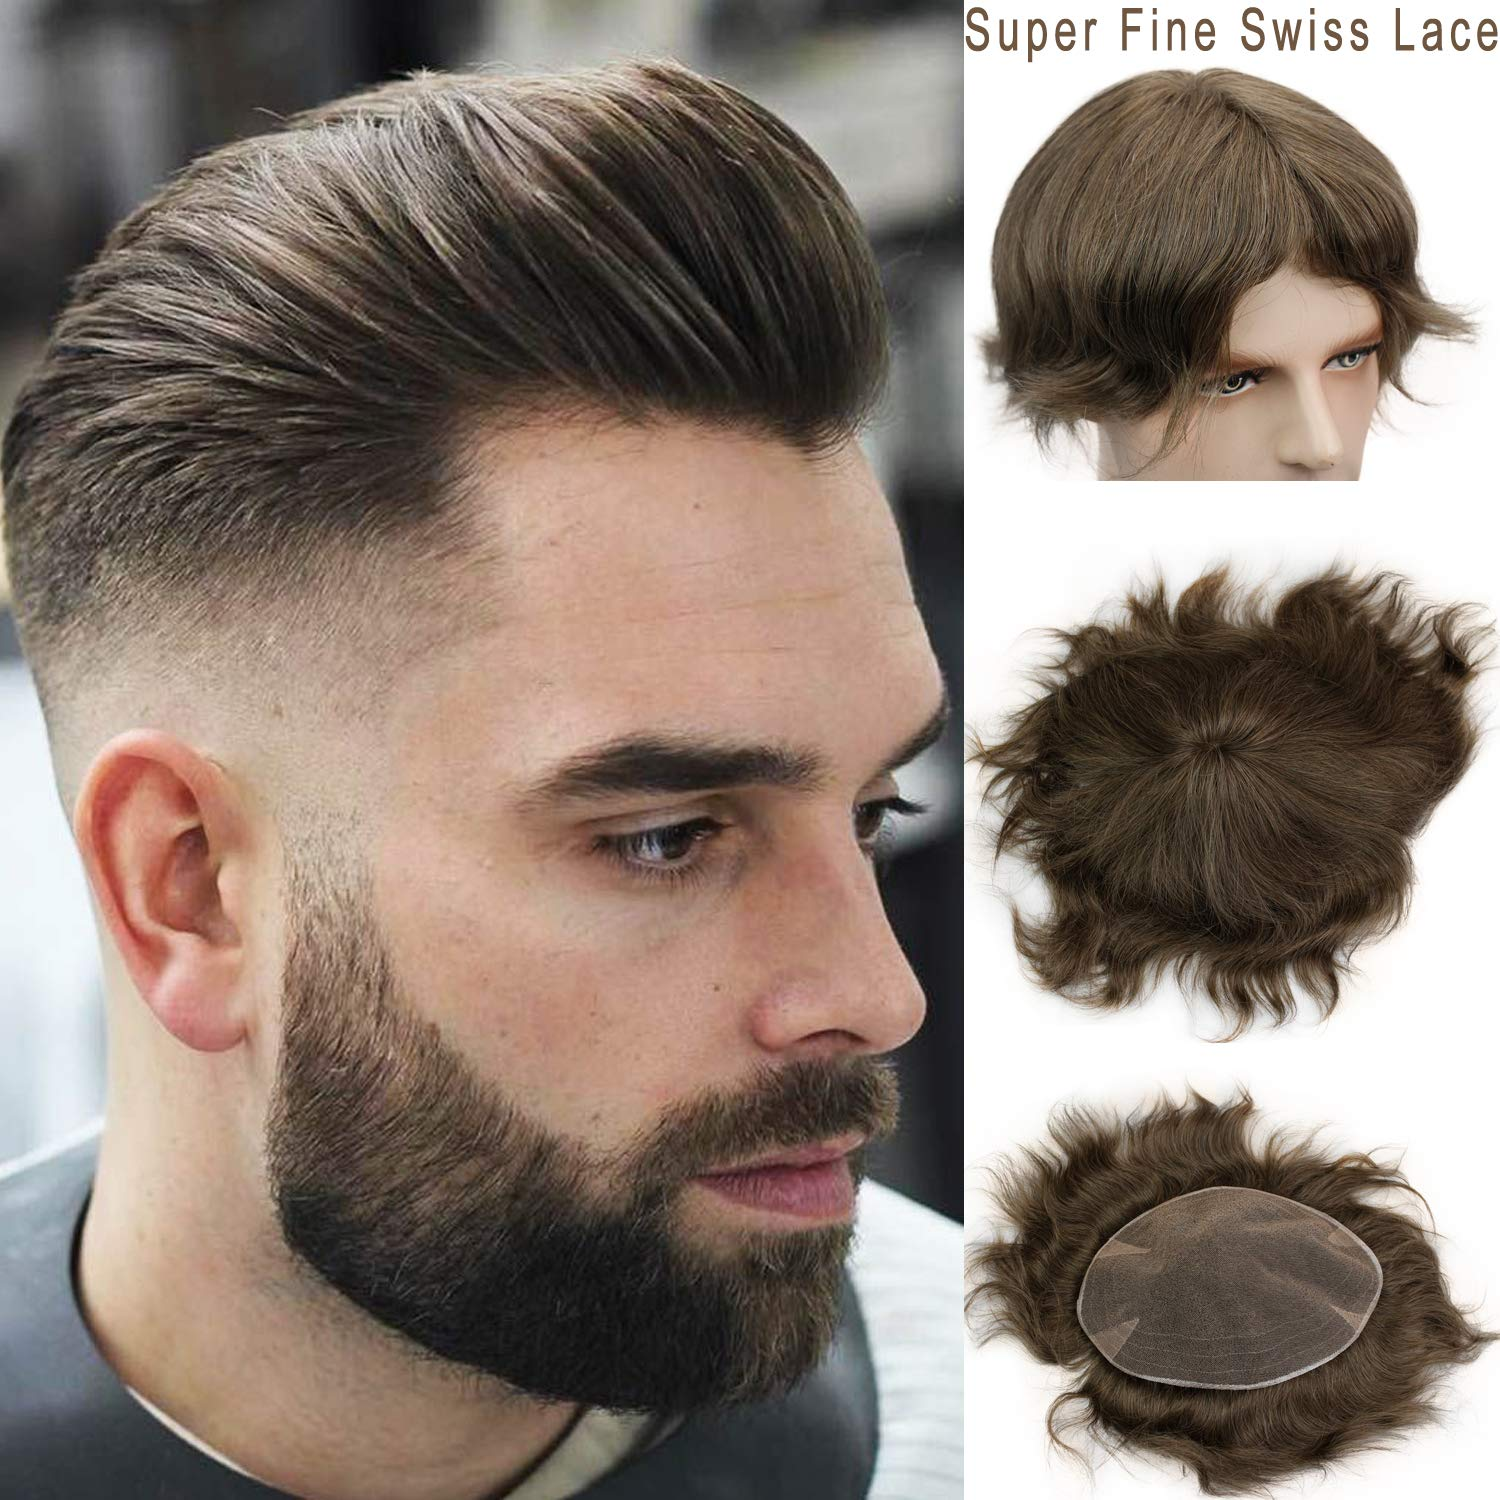 Rossy&Nancy Swiss Full Lace Men's Toupee European Real Human Hair Replacement for Men Hairpiece #7 Brown Color by Rossy&Nancy